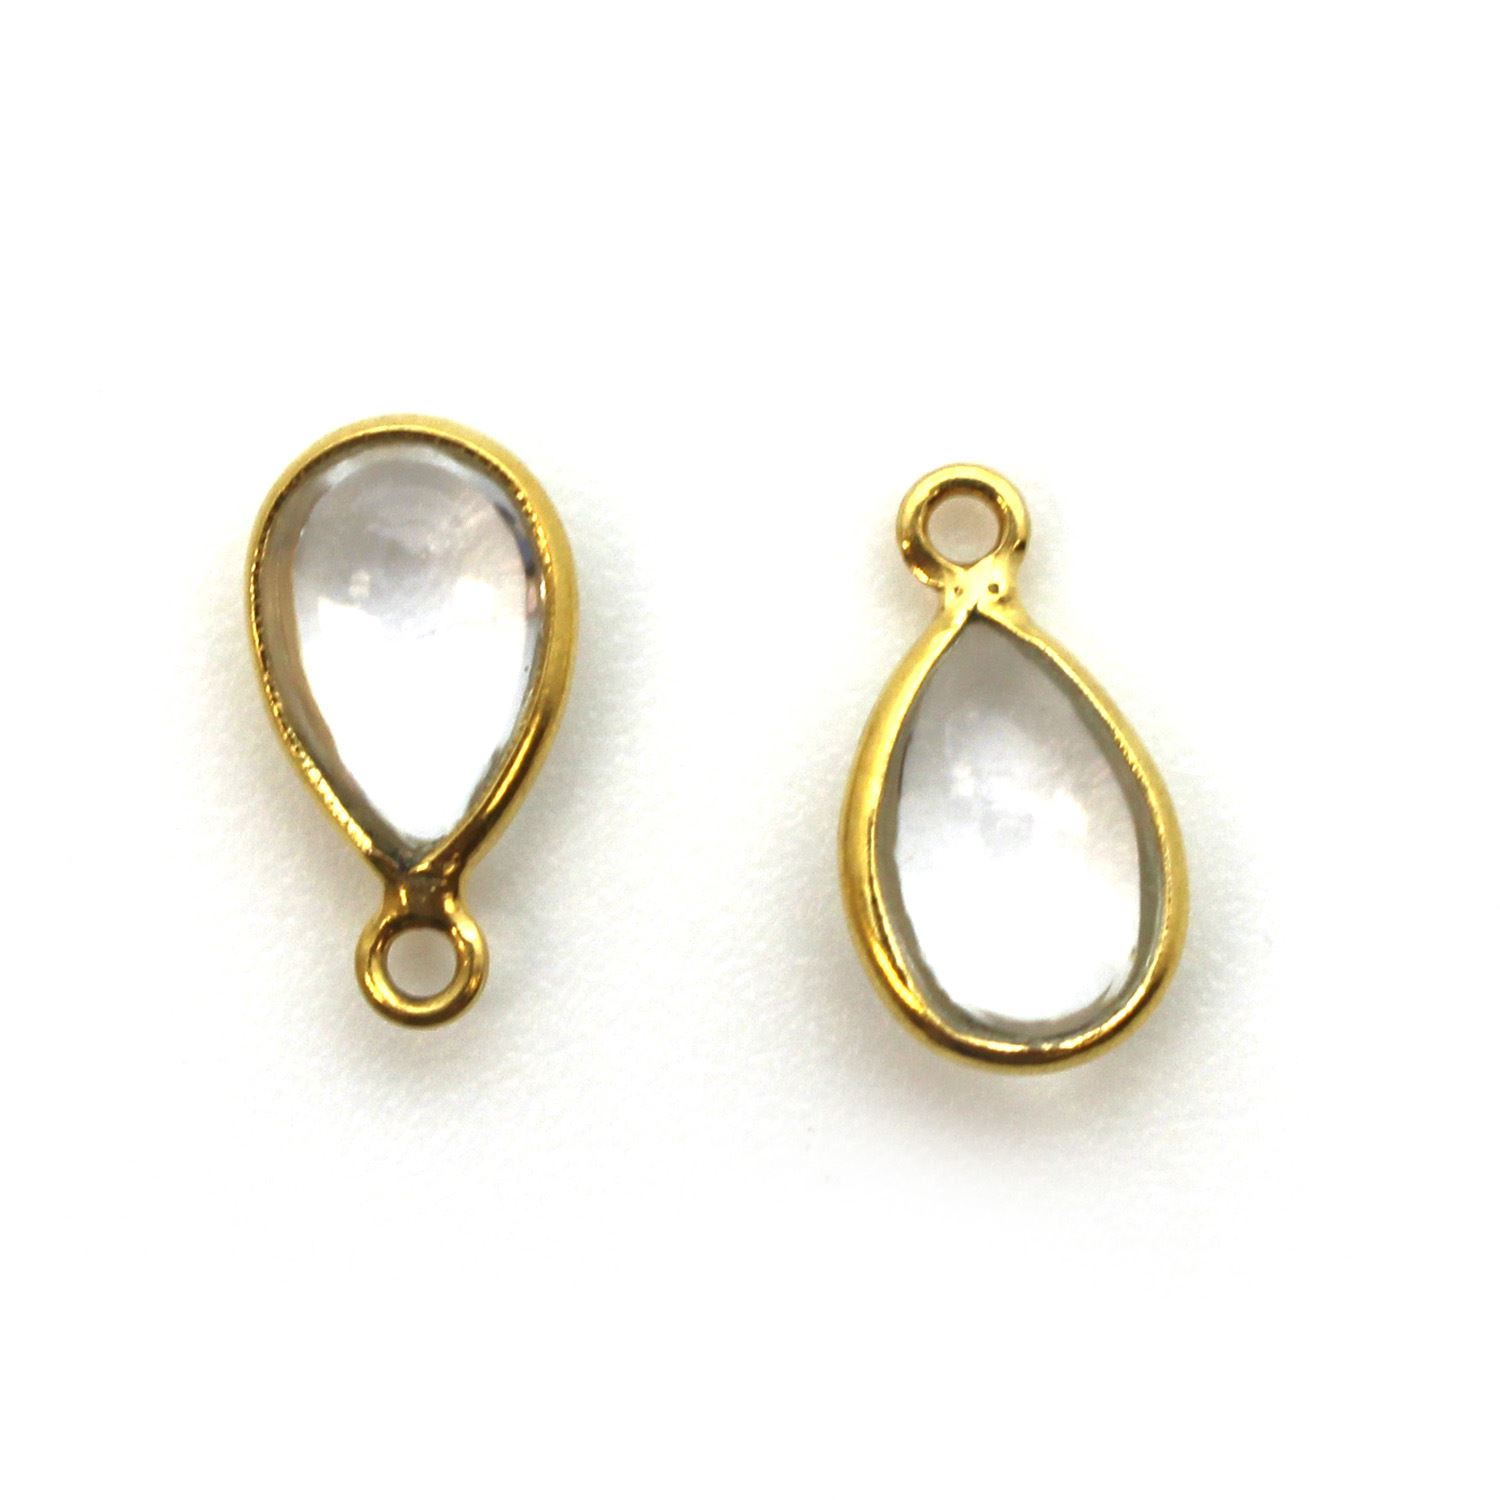 Bezel Charm Pendant - Gold Plated Sterling Silver Charm - Natural Crystal - Tiny Teardrop Shape